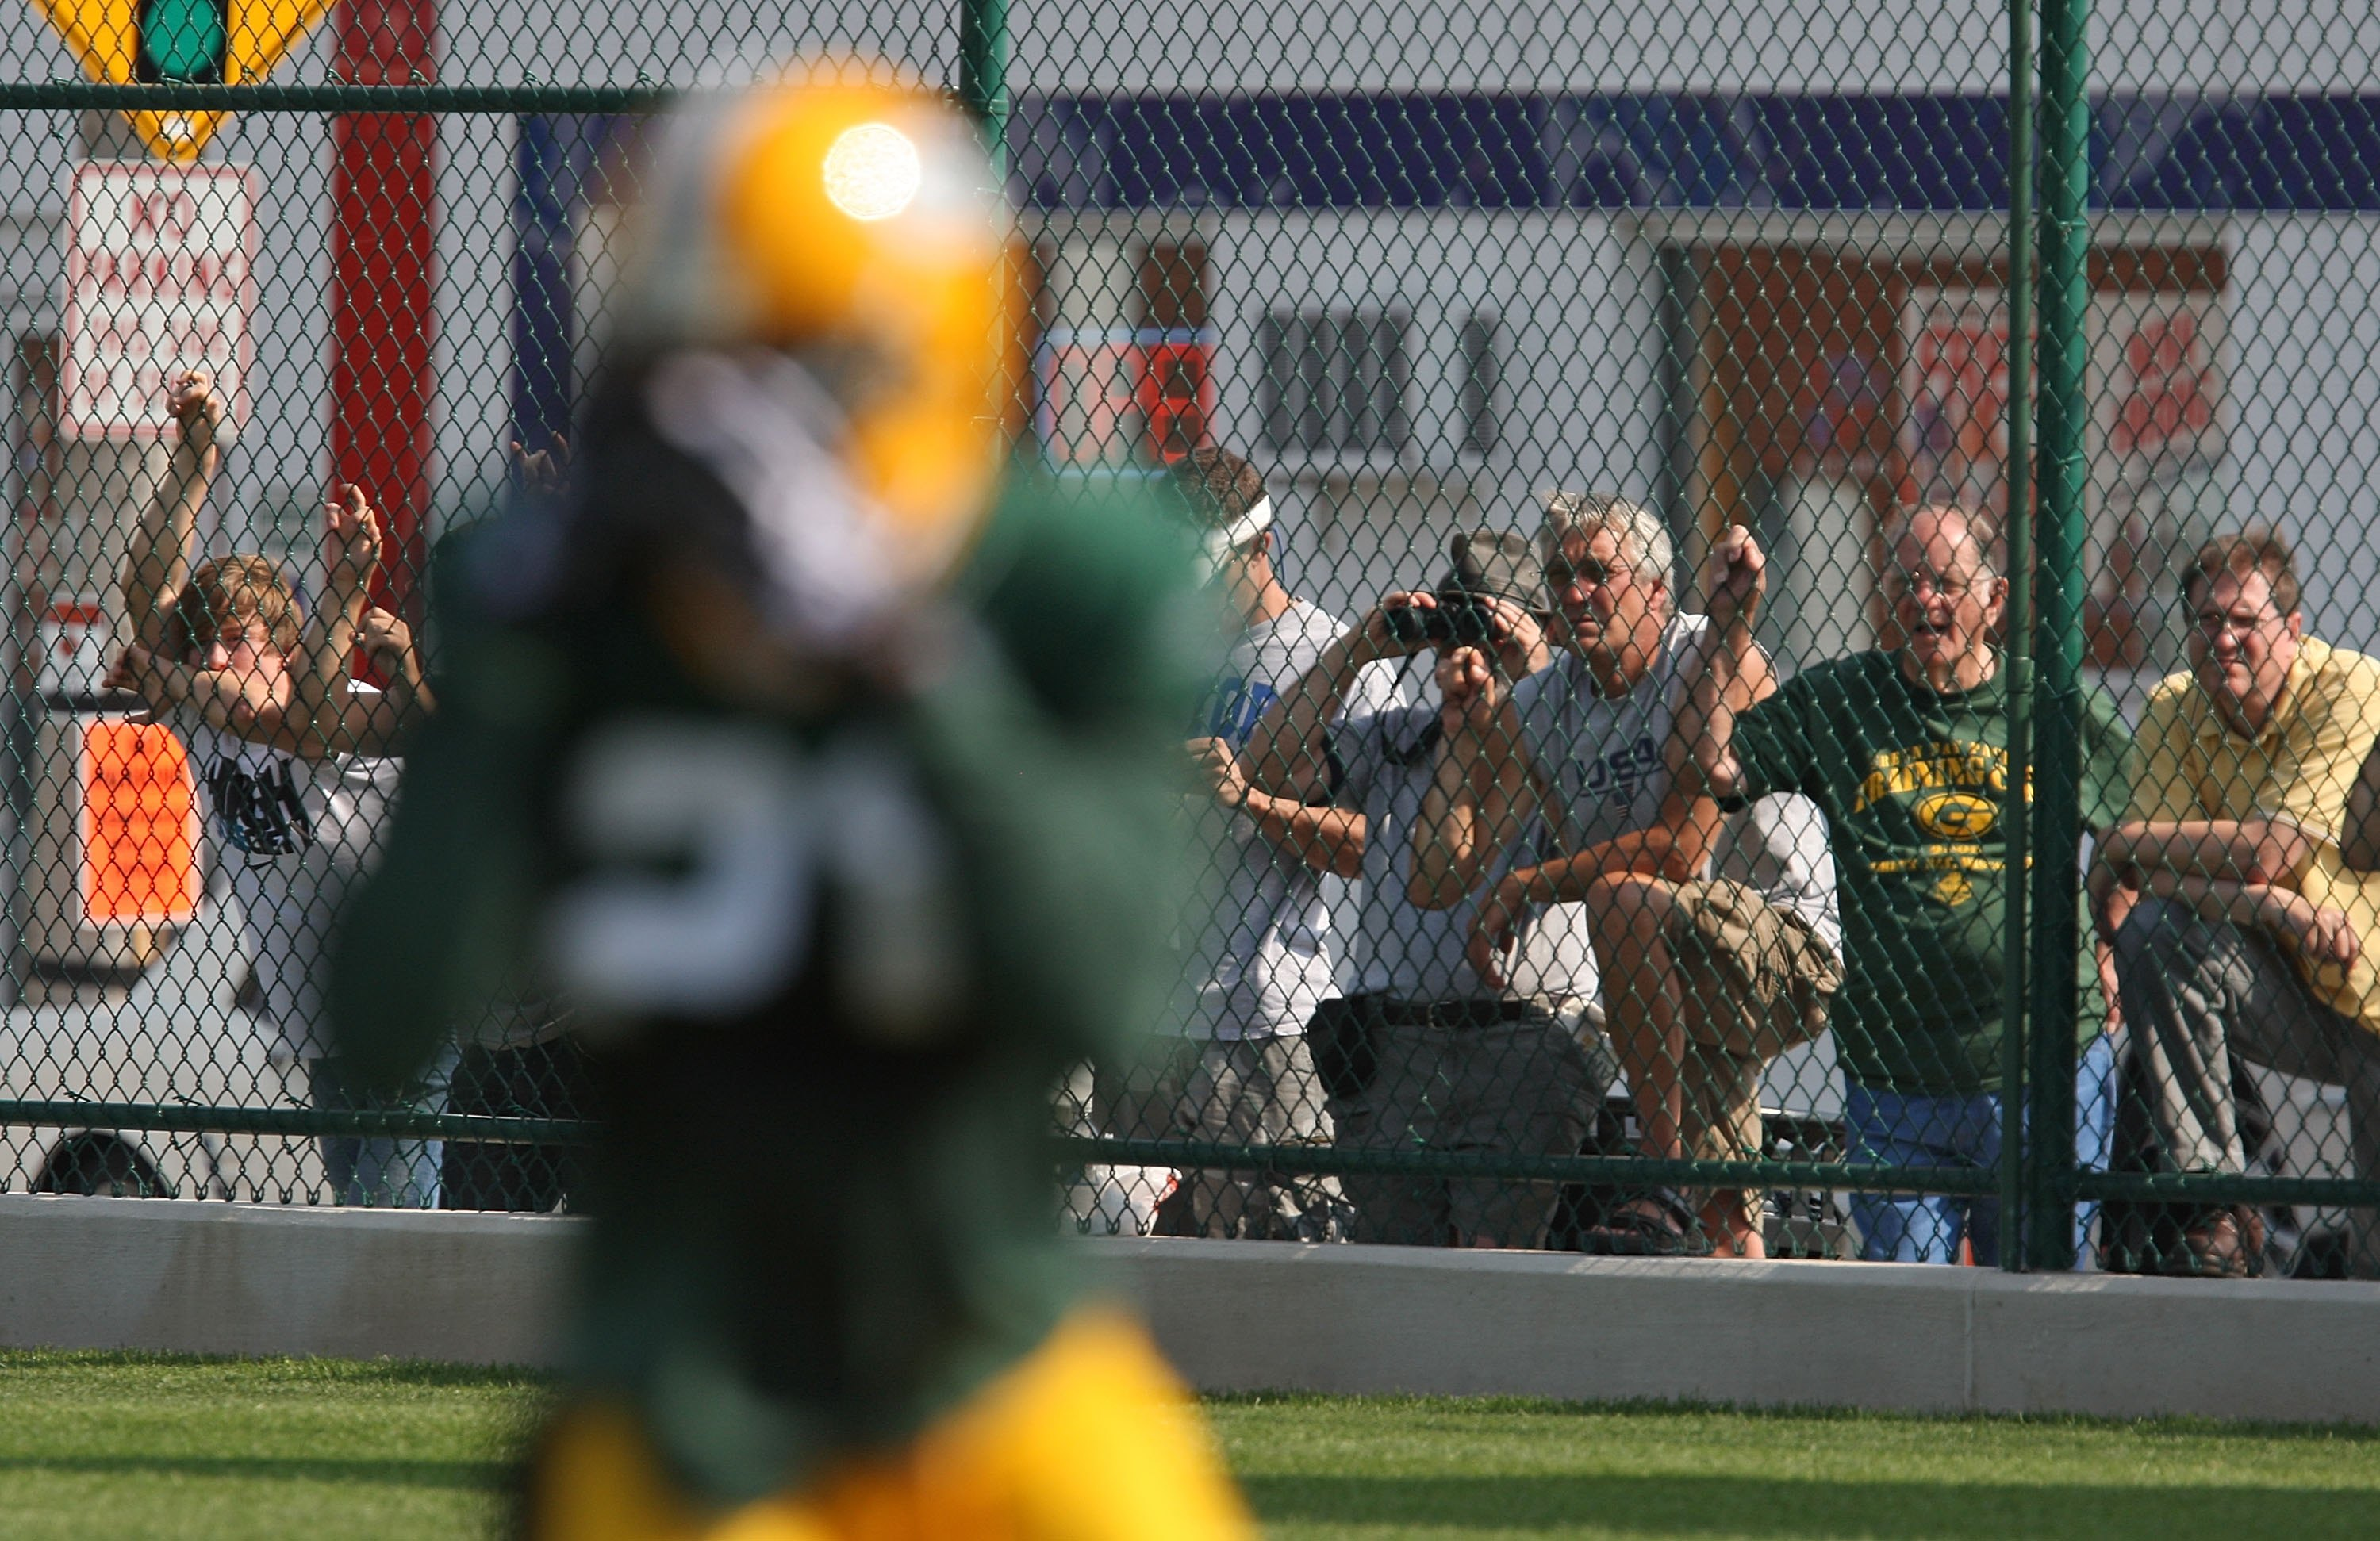 89756791-green-bay-packers-training-camp.jpg